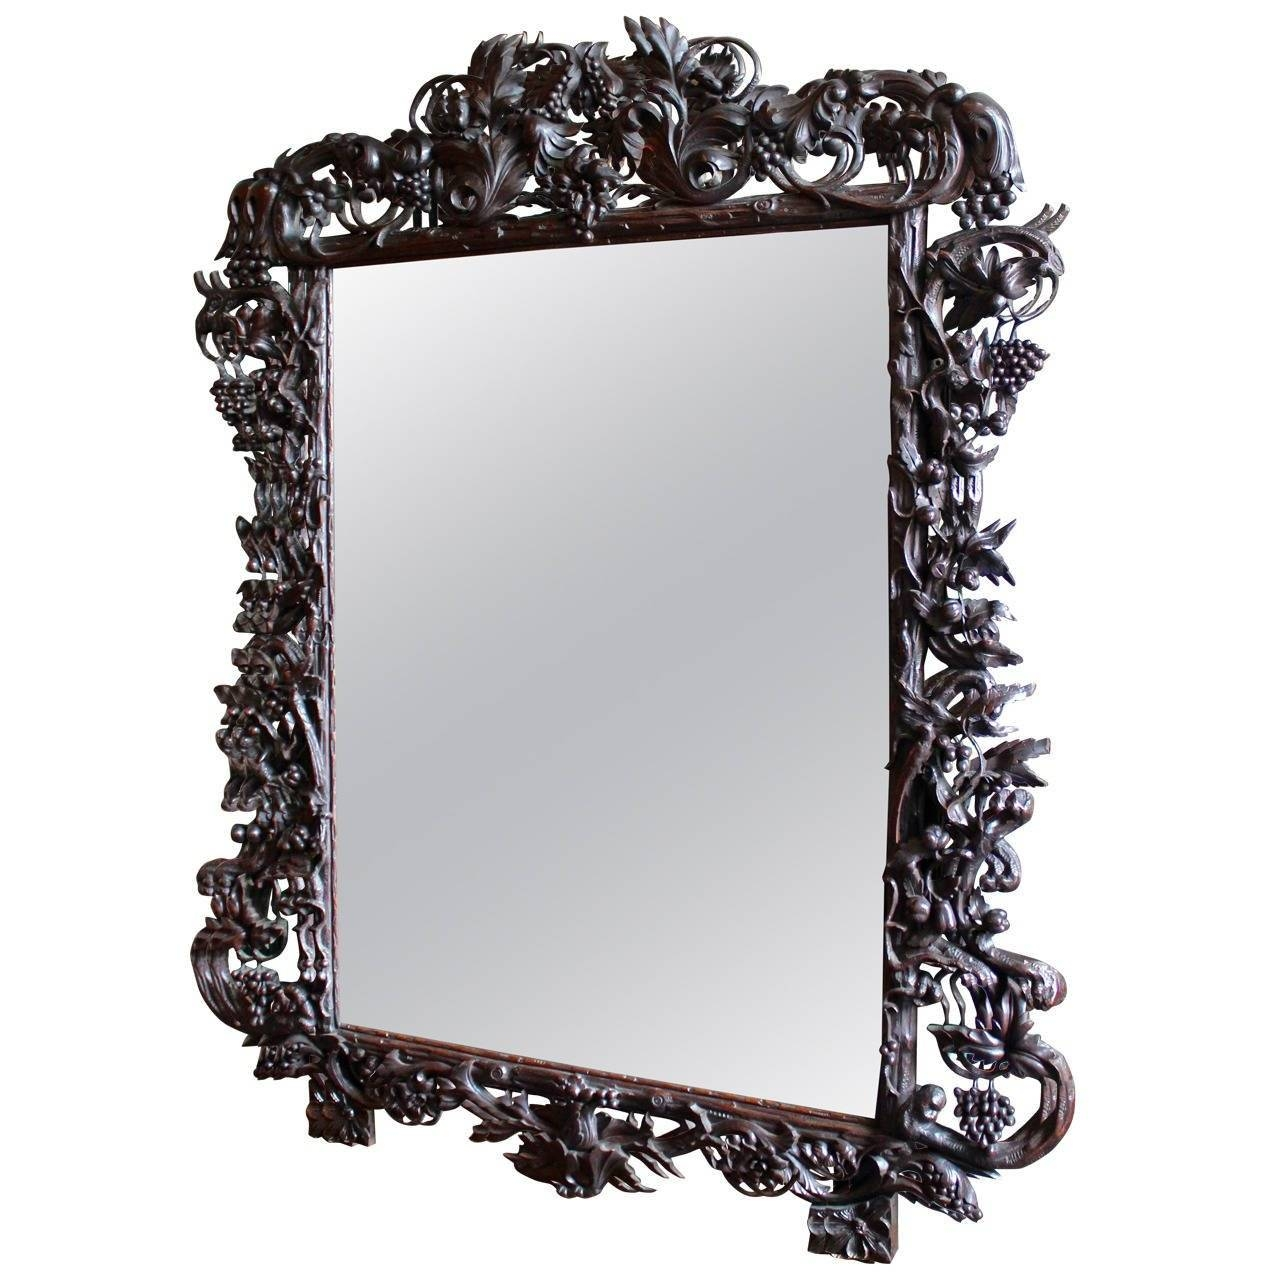 Late 19Th Century Ornate Large Black Forest French Mirror At 1Stdibs within Ornate Black Mirrors (Image 6 of 15)